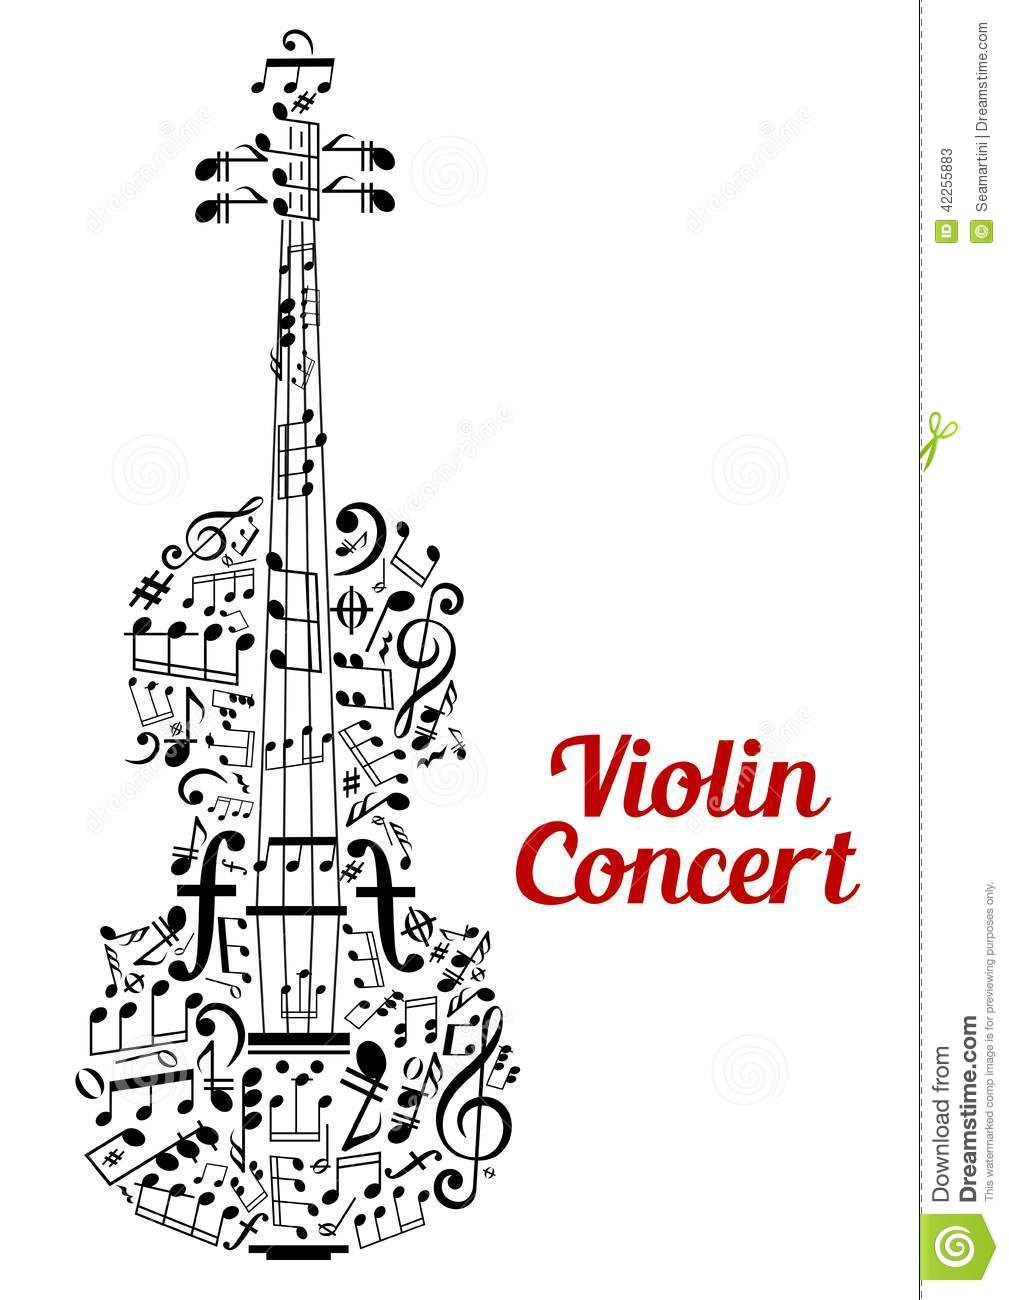 Creative Violin Concert Poster Design Stock Vector - Image: 42255883